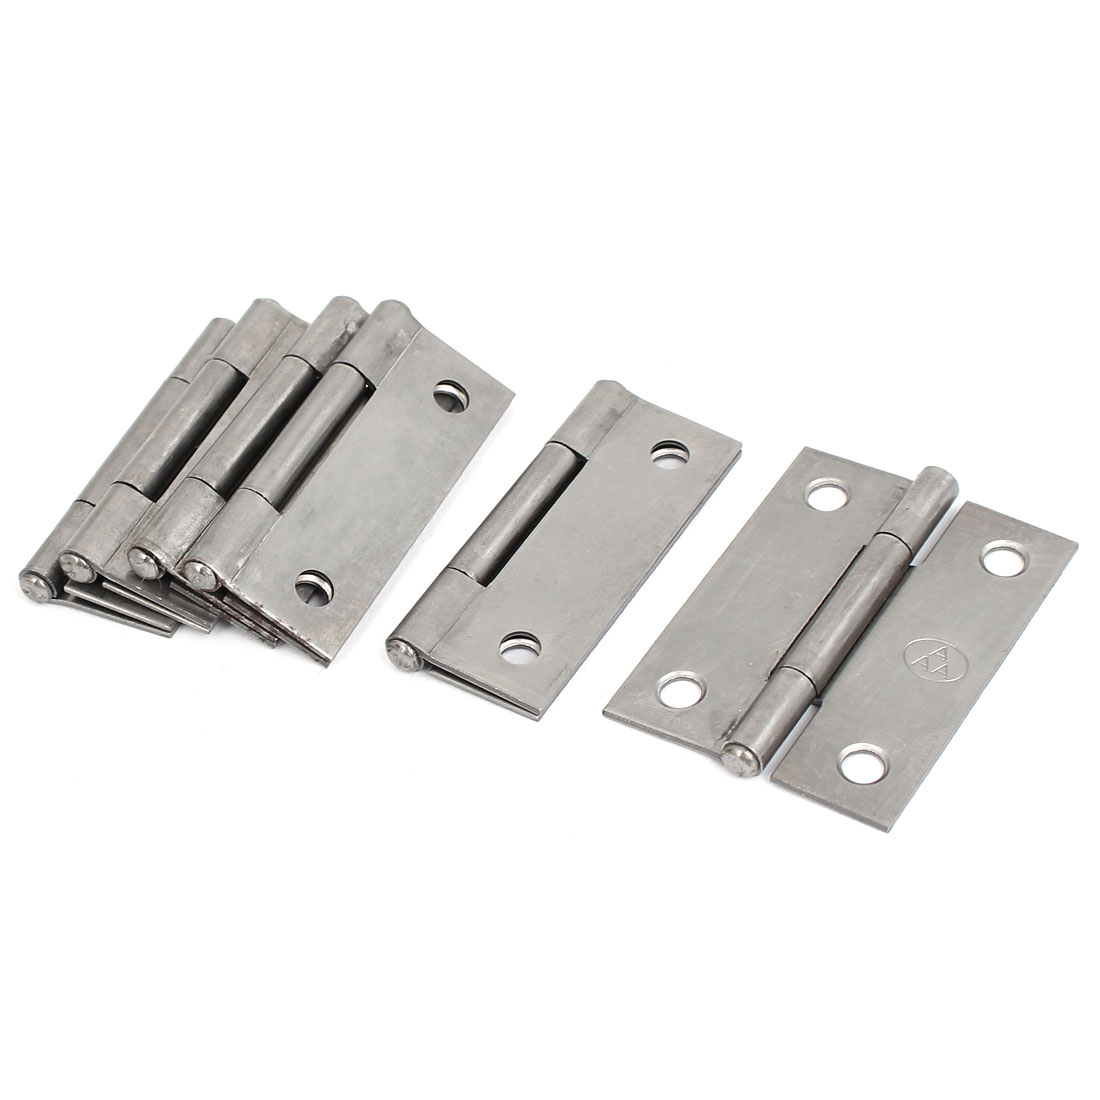 "Home Furniture Cabinet Door Iron Butt Hinge Silver Gray 2"" Long 6pcs"